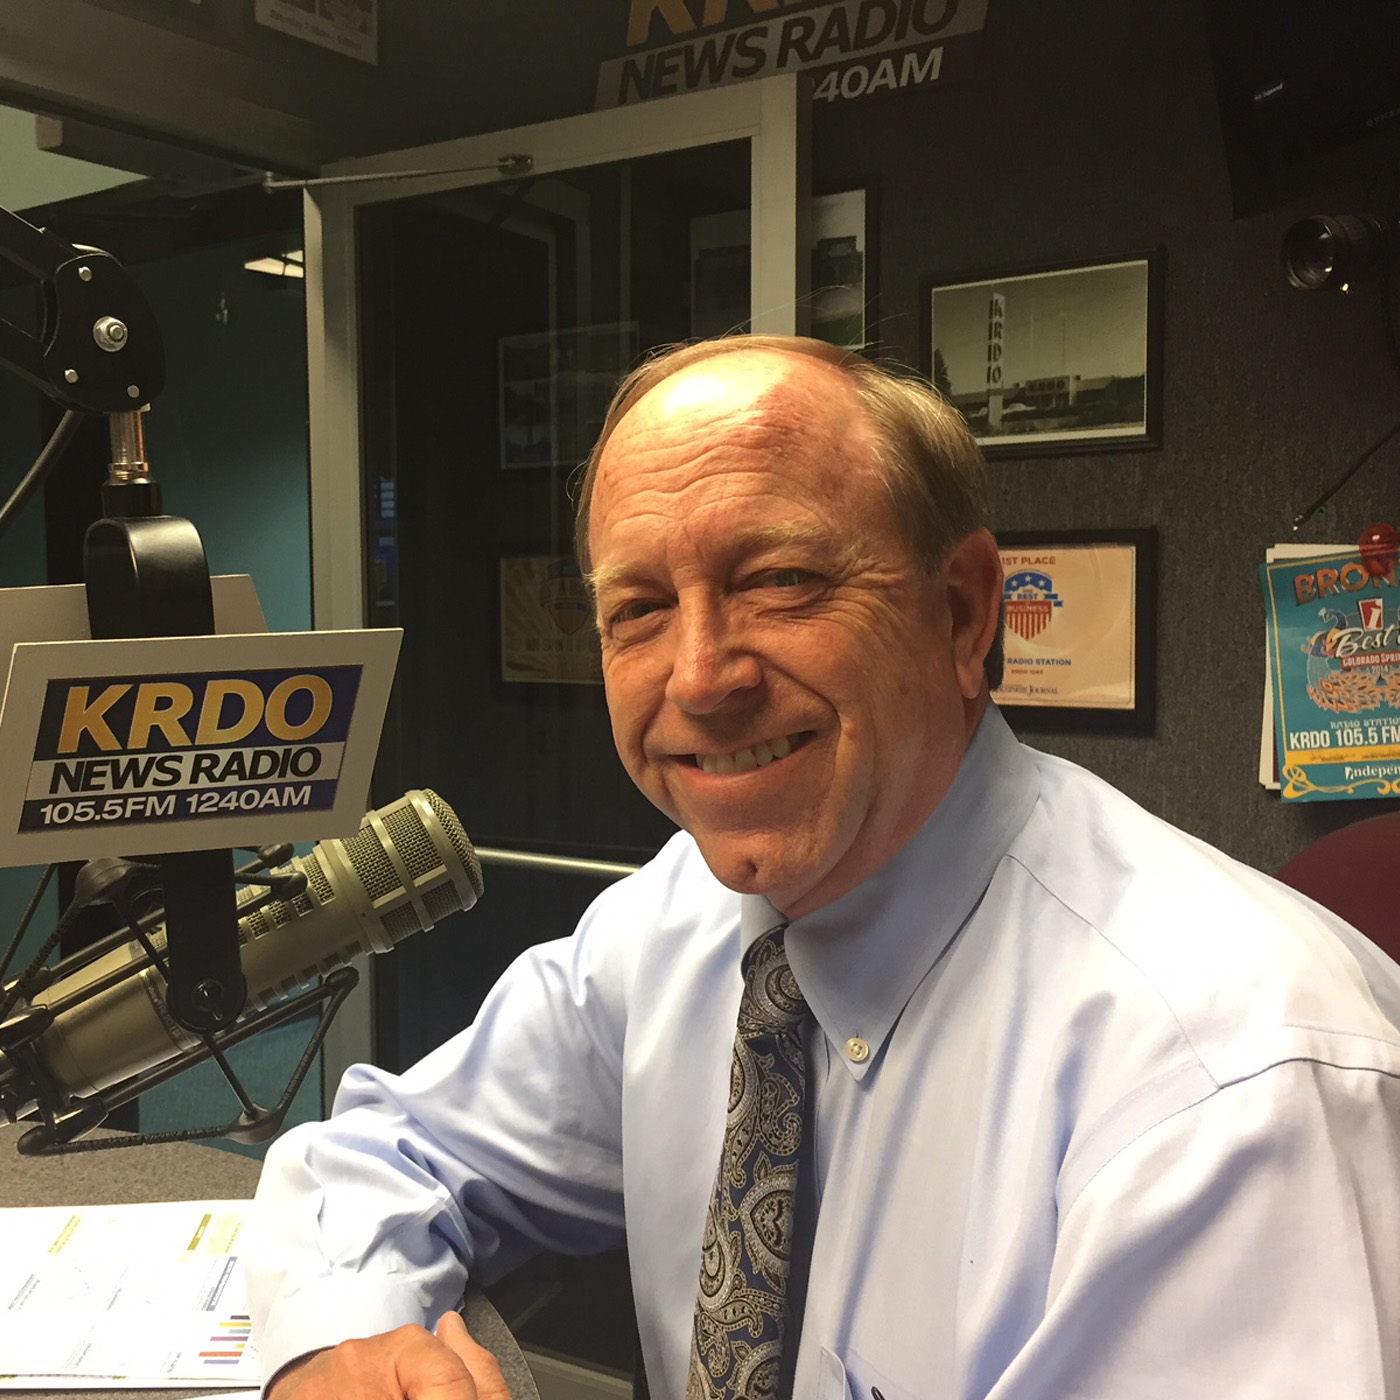 KRDO's Morning News - June 19, 2019